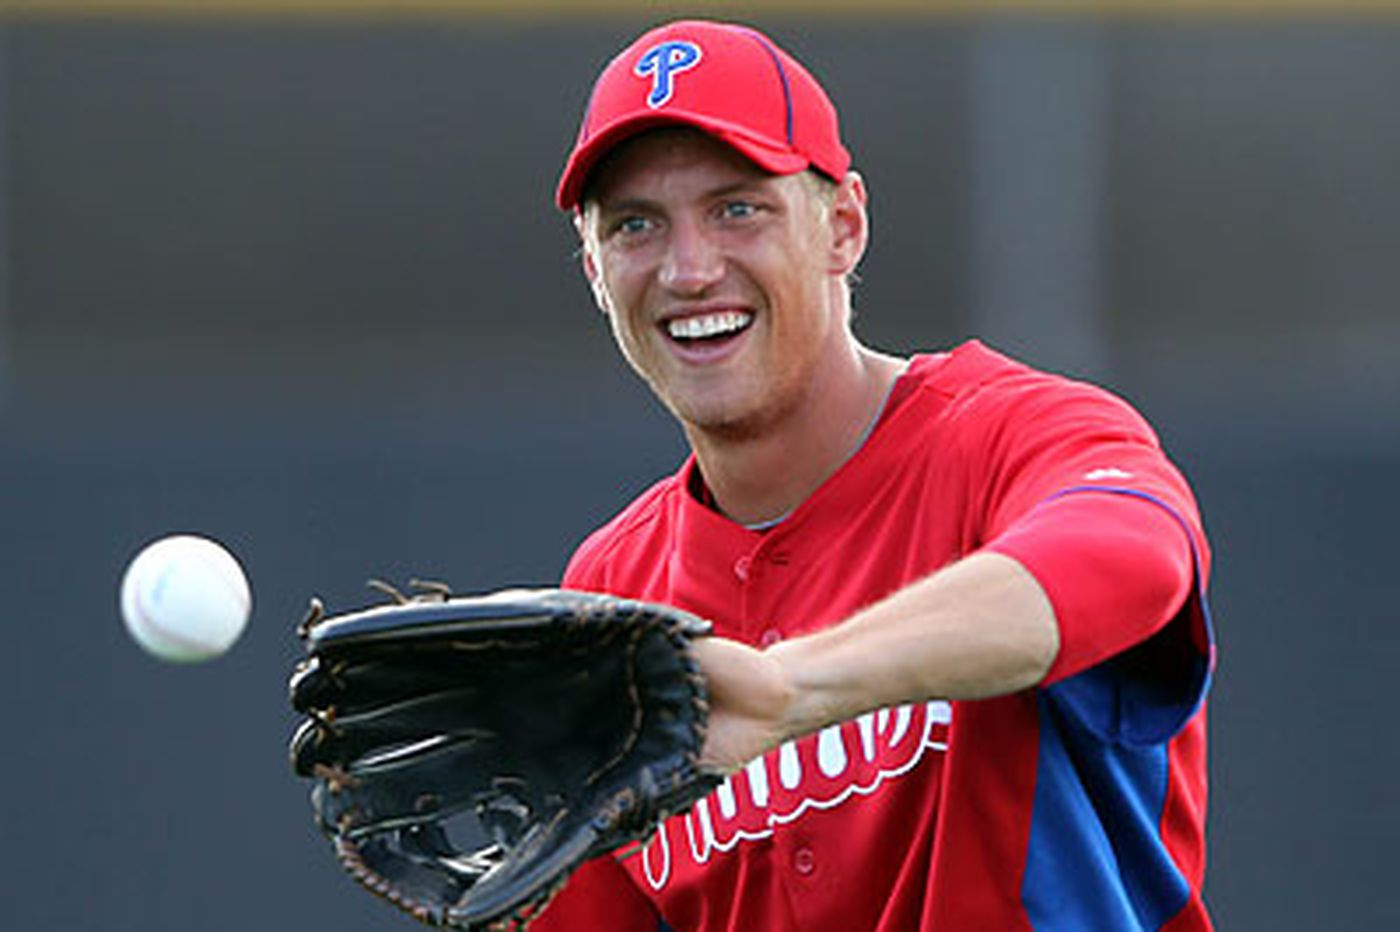 Phillies right fielder Hunter Pence makes quick recovery from left shoulder injury